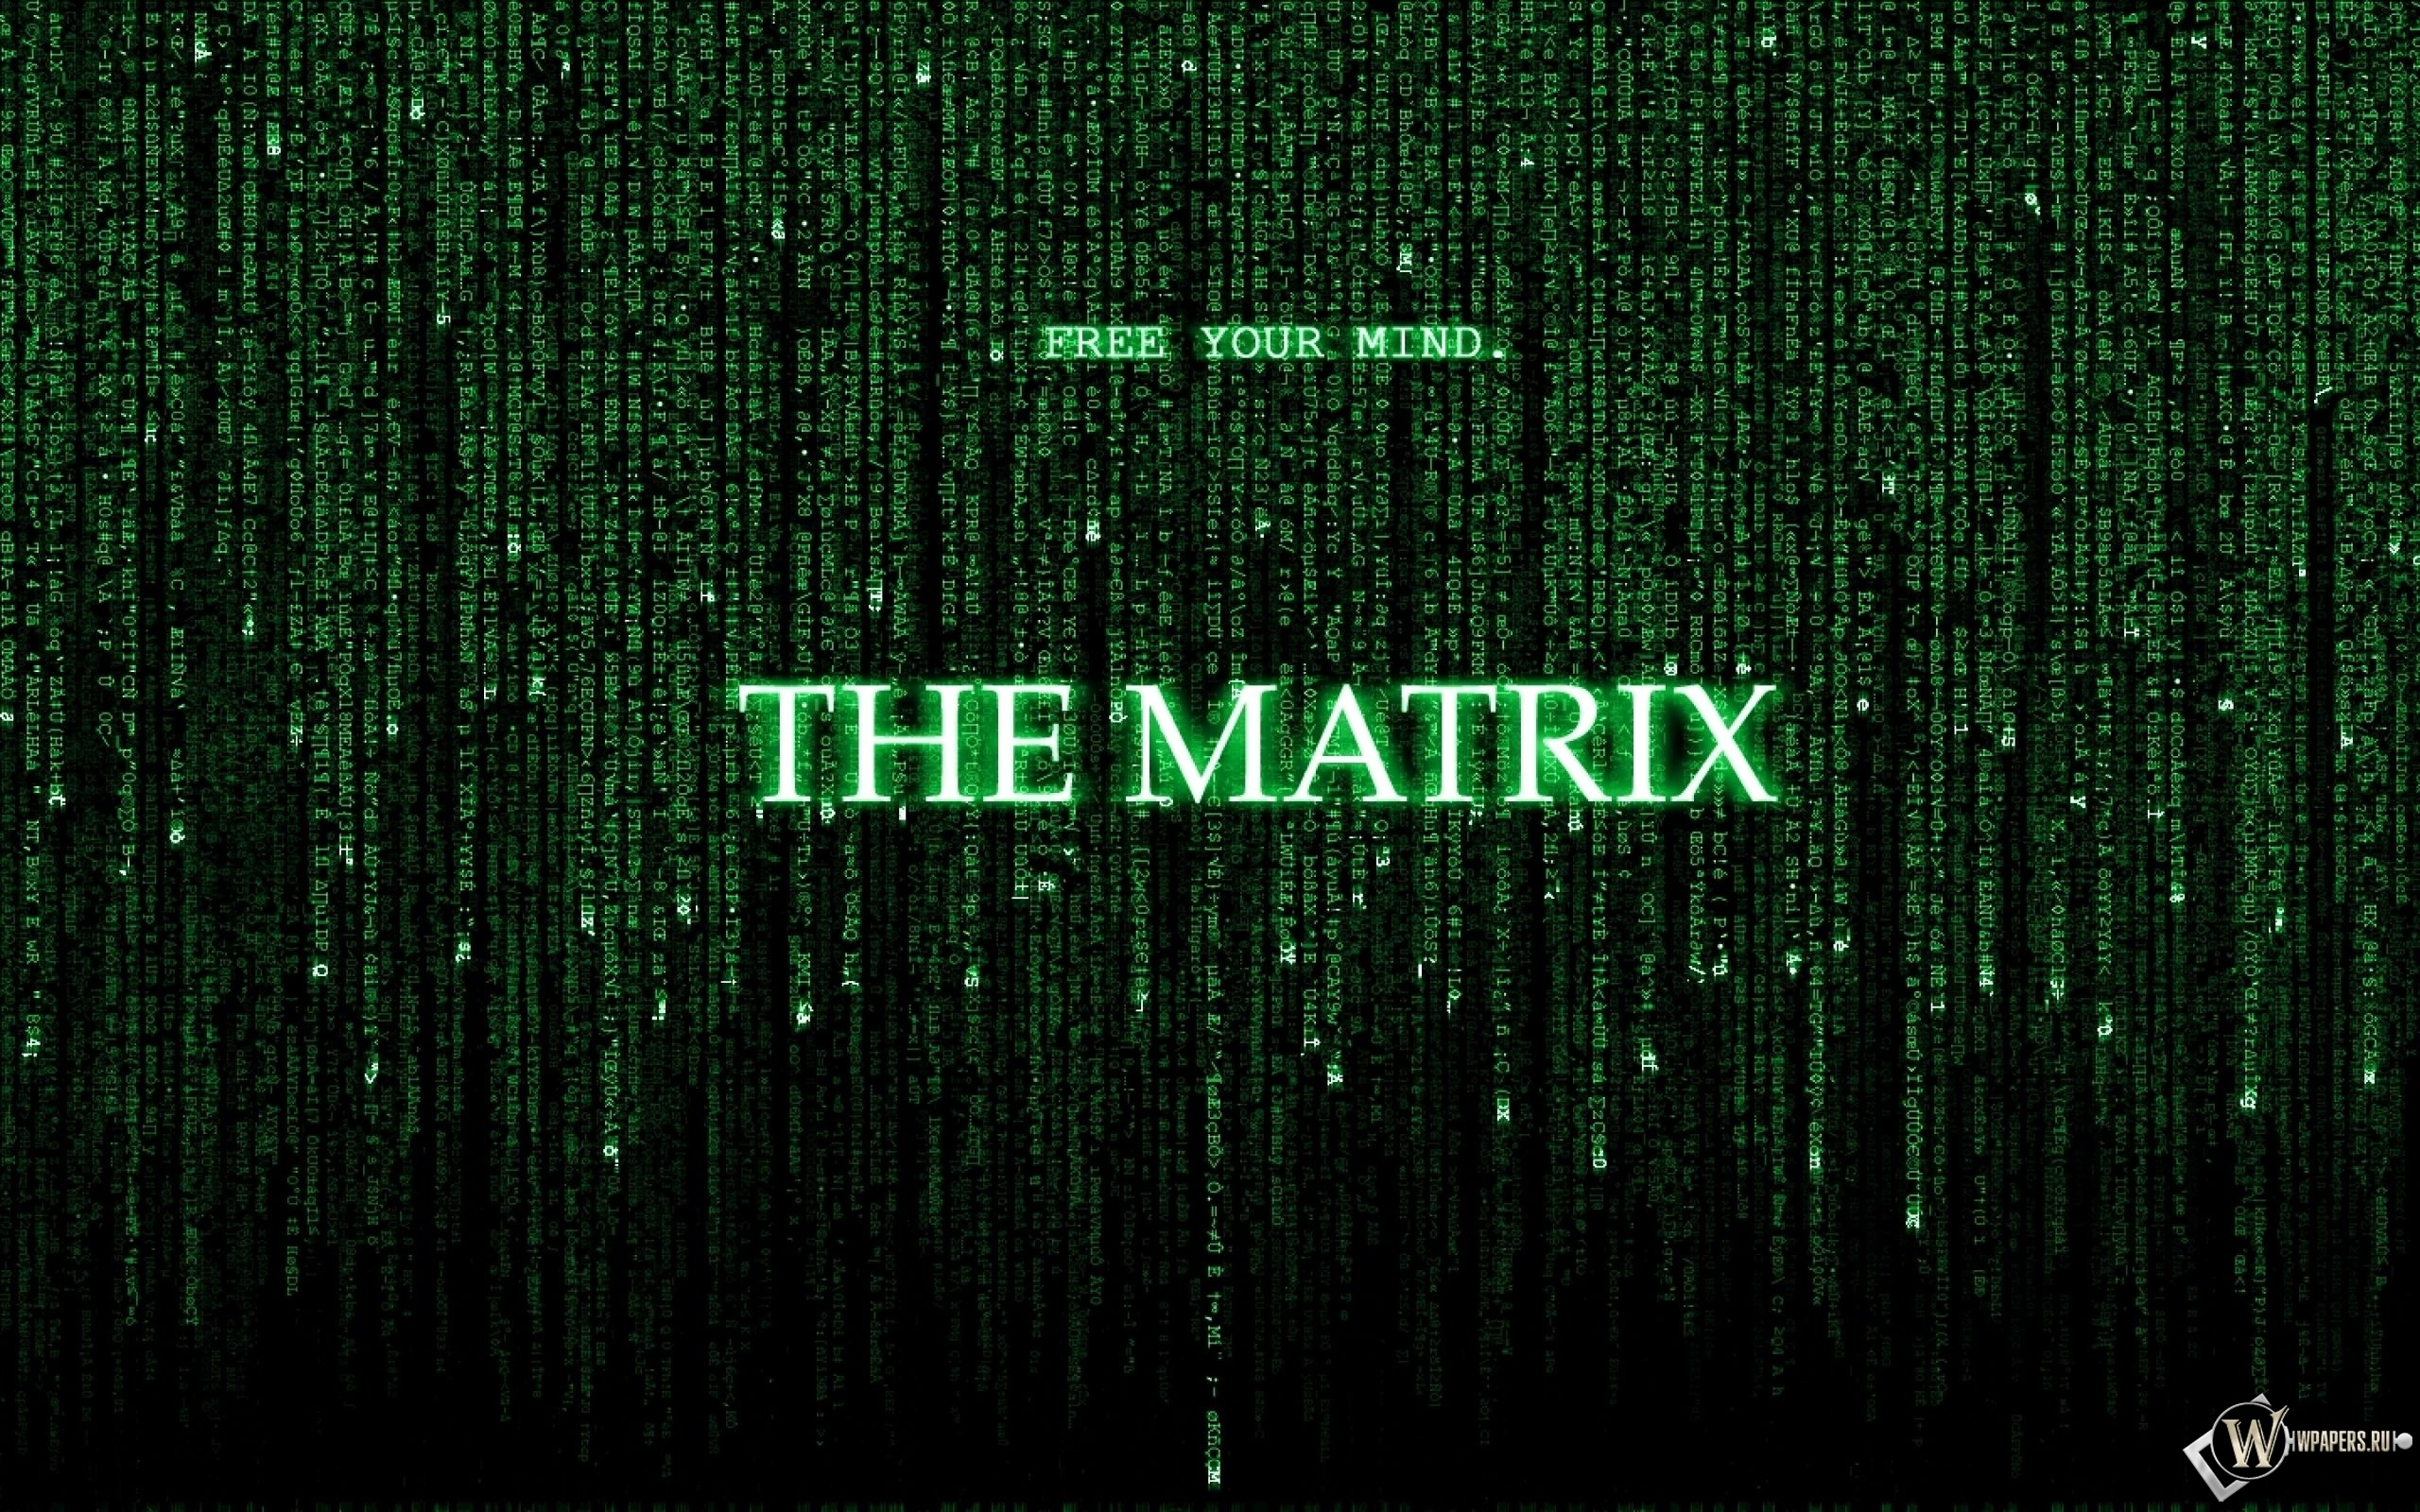 enviromental movement matrix Hijacking spaceship earth claiming that earth is a spaceship with limited resources requiring central control, globalists are steering humanity into the black hole of un-dominated world government.